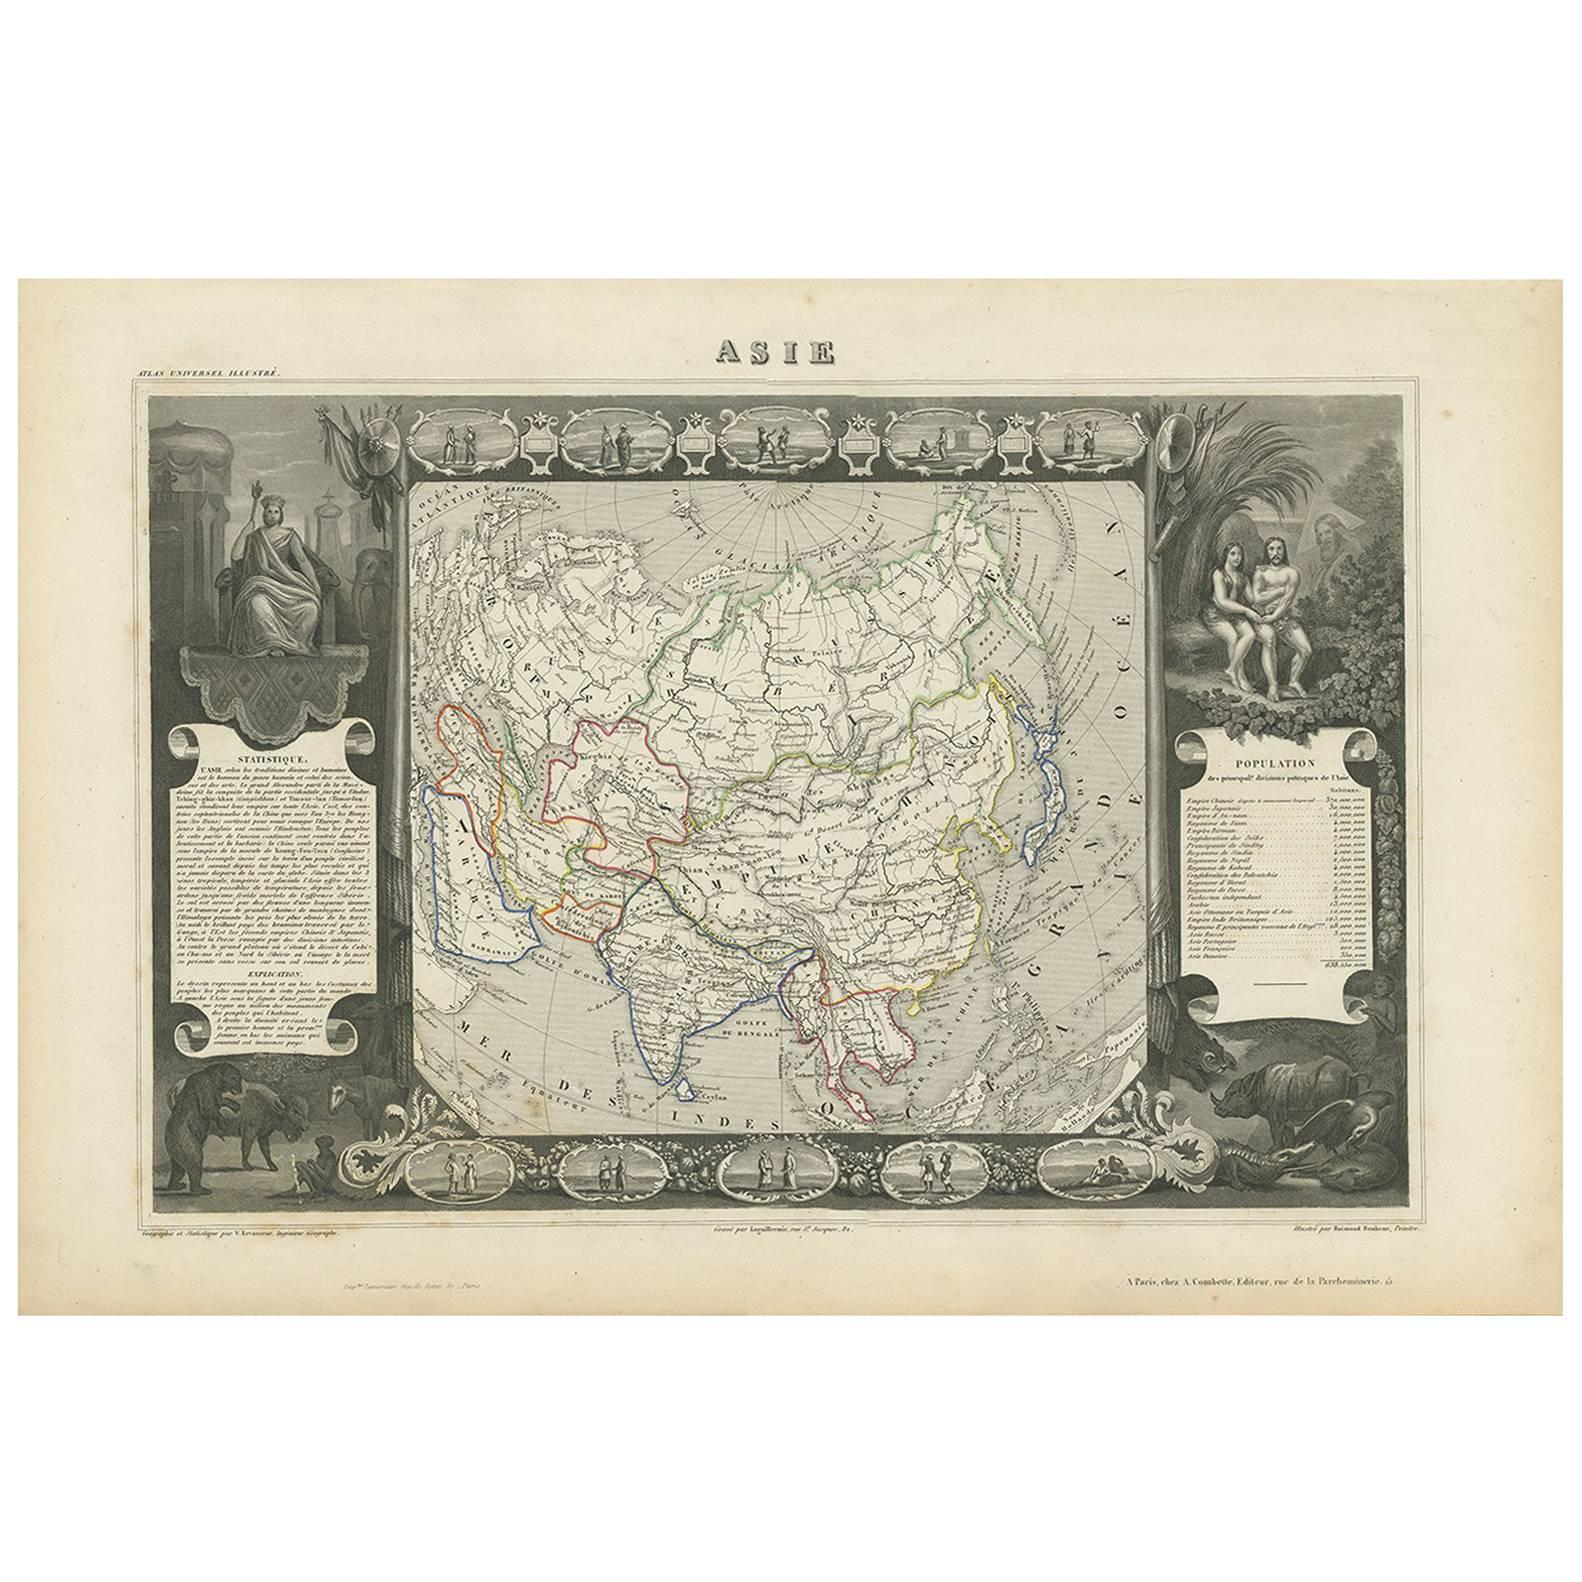 Antique Map of Asia by V. Levasseur, 1854